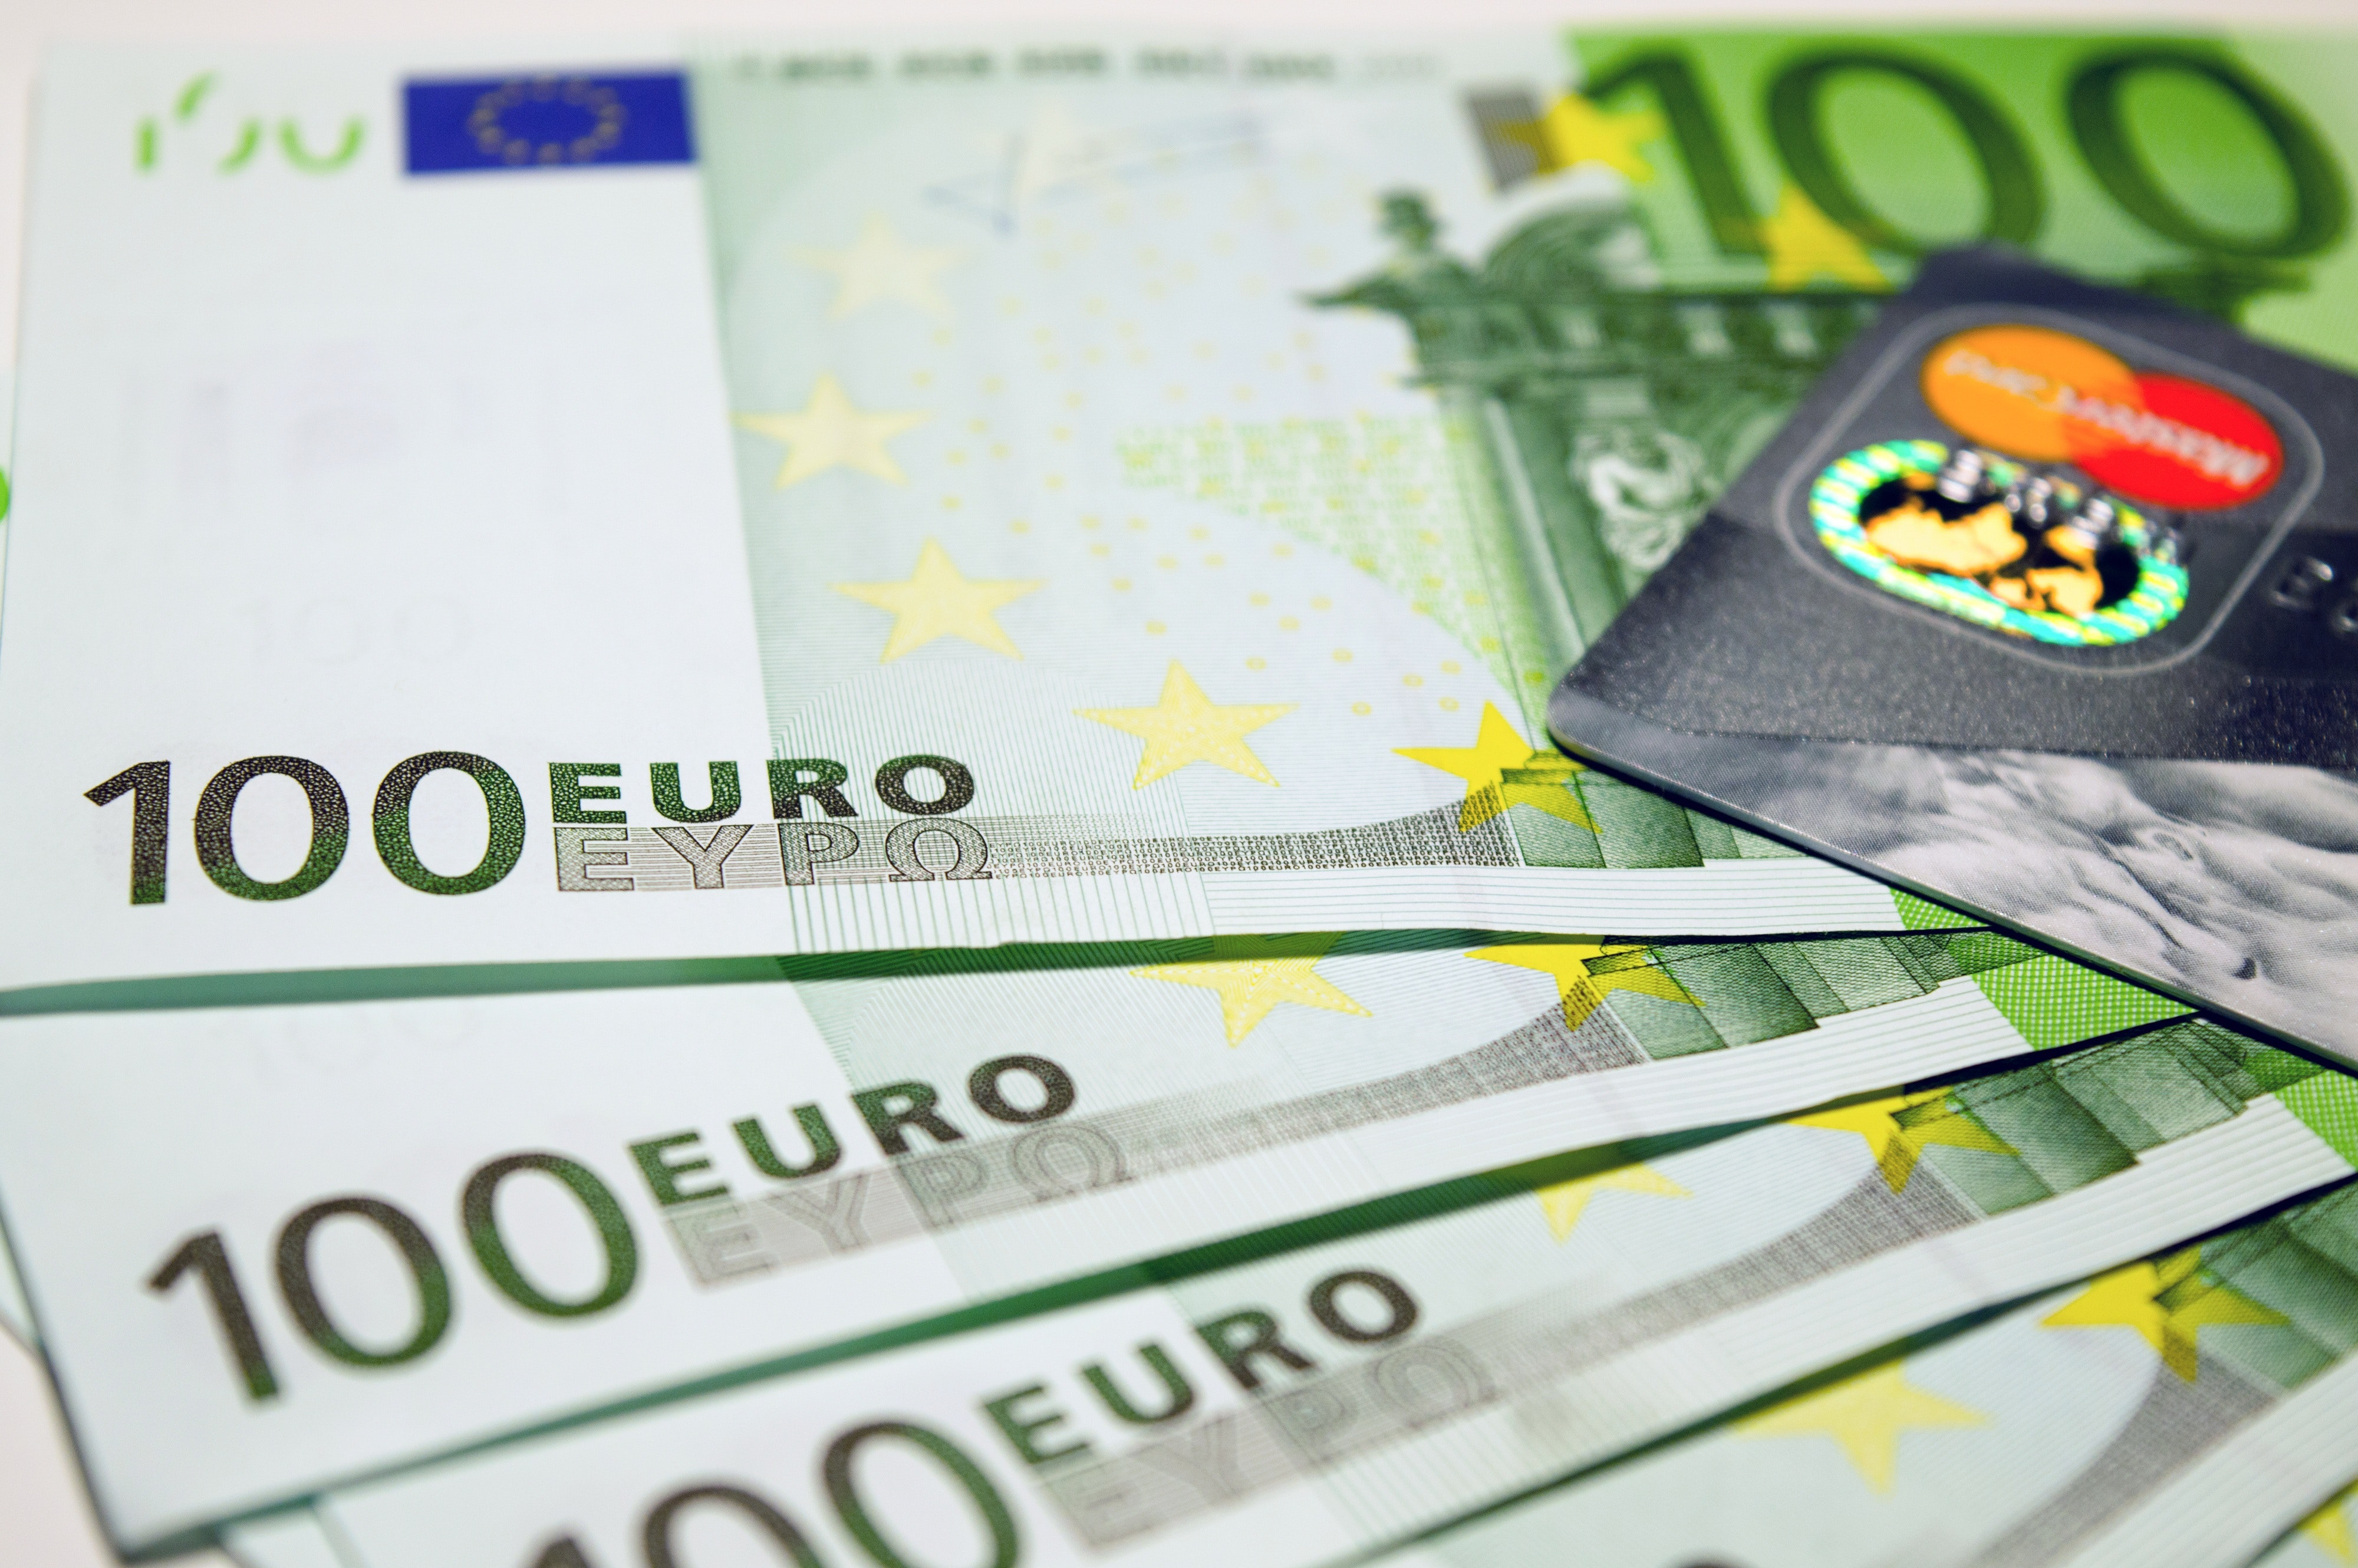 The design of banknotes of €100 and €200 was updated in Europe